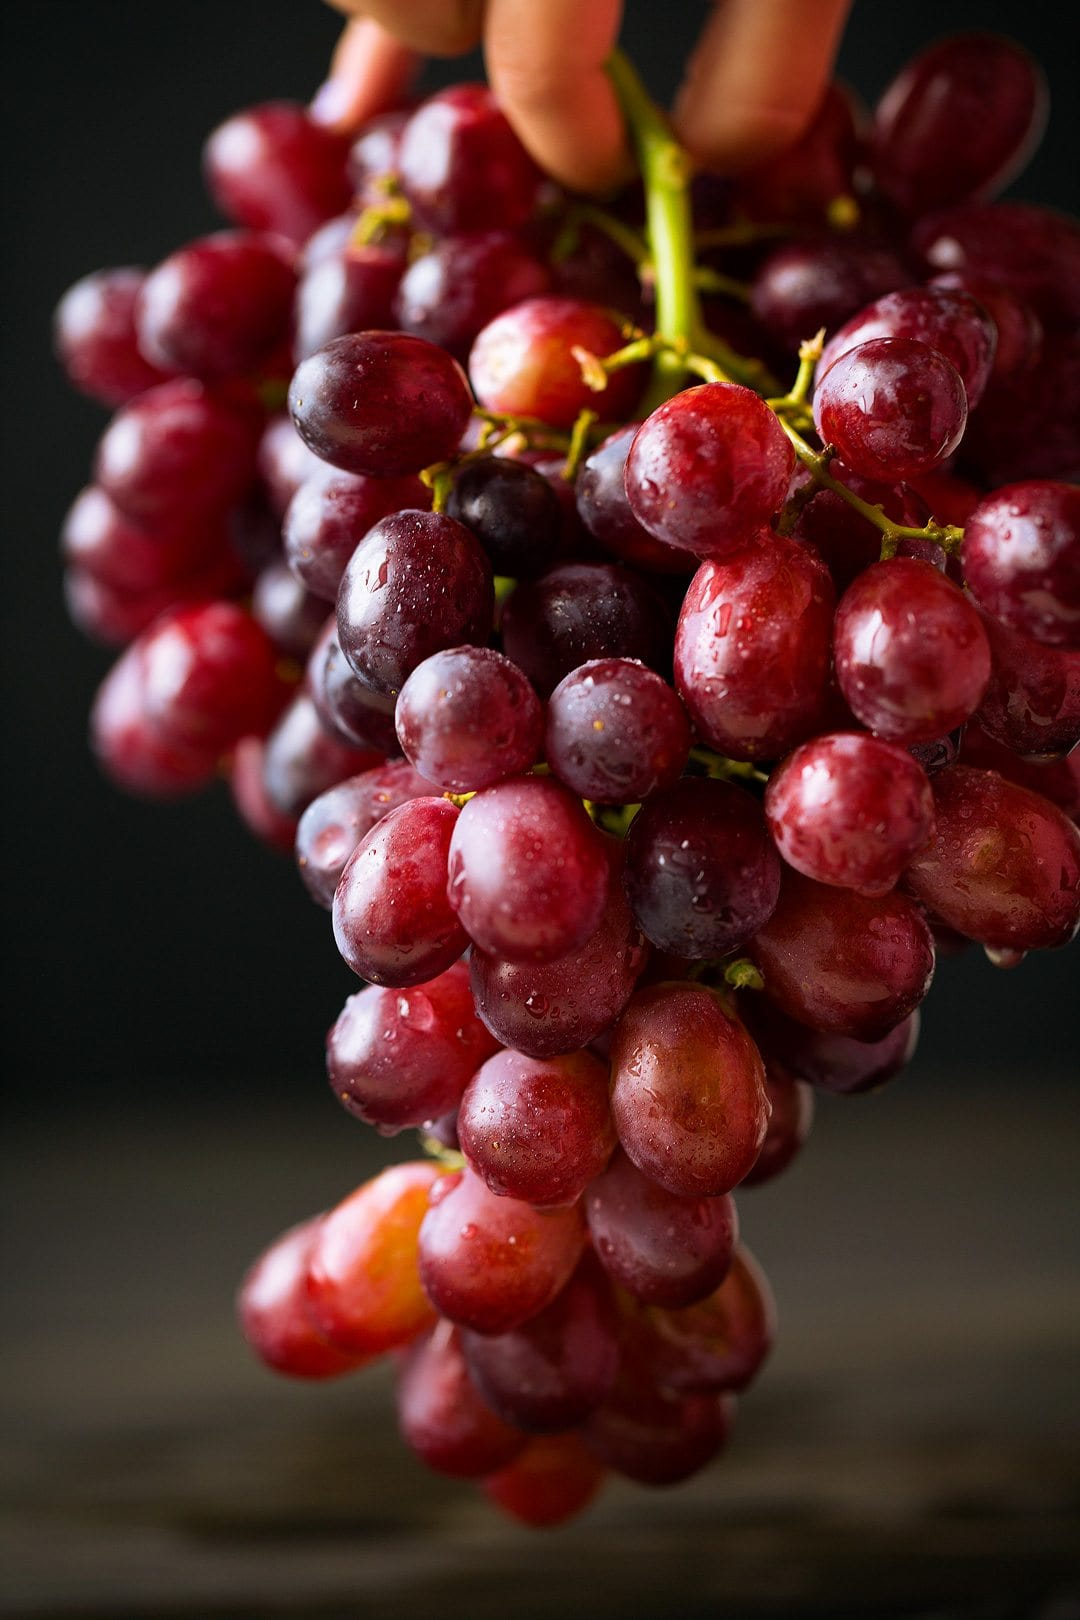 Close up image of red grapes dripping with water.